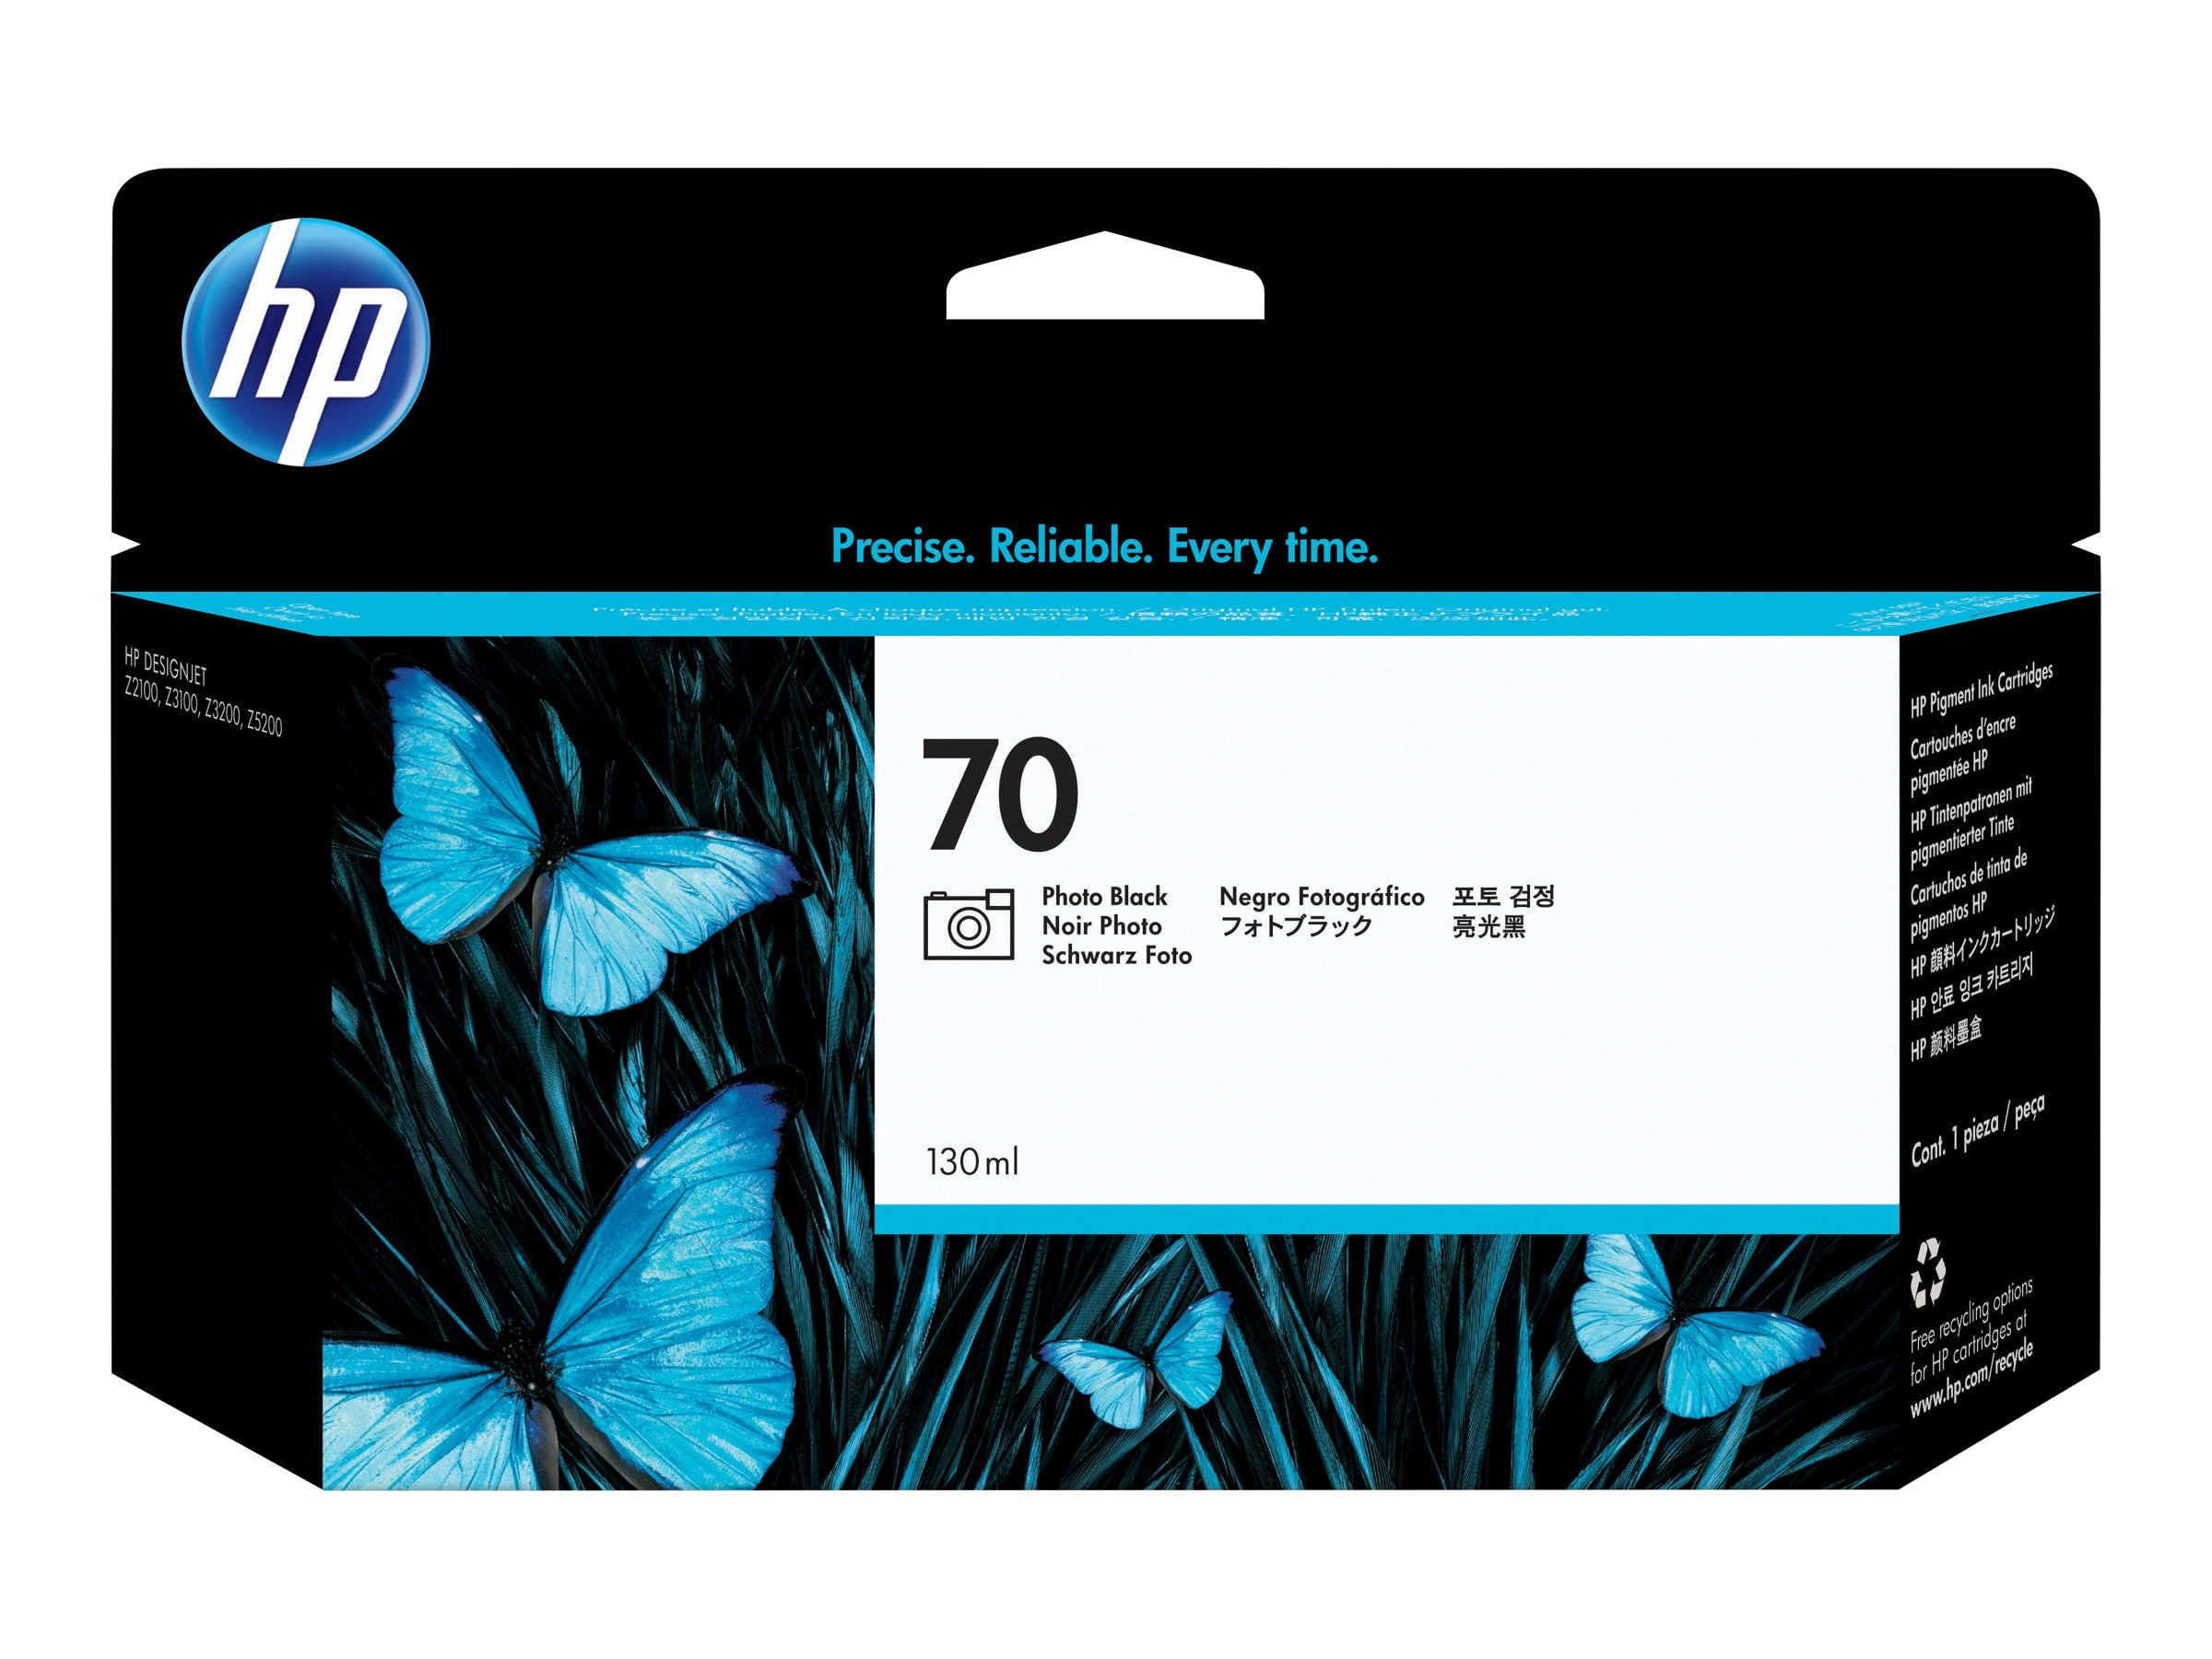 HP 70 130-ml Photo Black Ink Cartridge for HP DesignJet Z2100 & Z3100 Printers